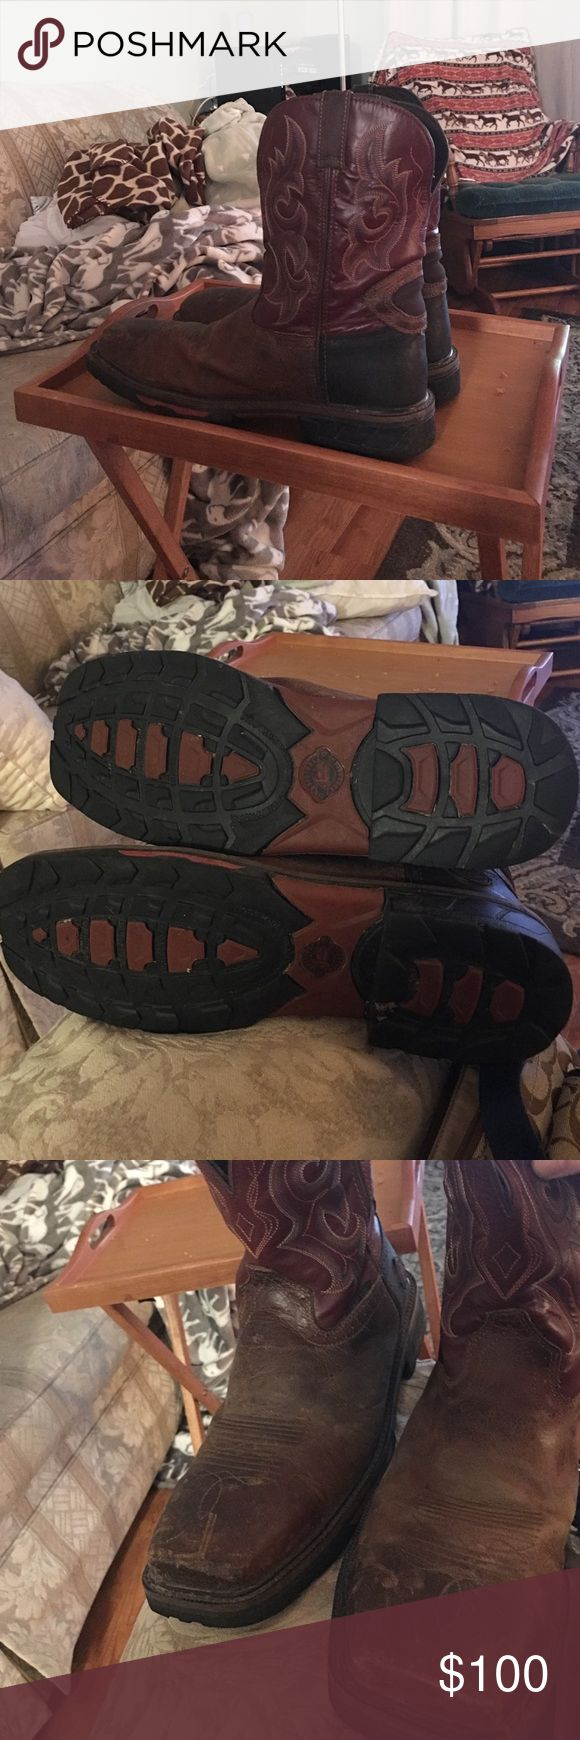 REDUCED AGAIN!! Awesome composite toe Boots Boots Only 2 months old - size 12D - composite toe for extra durability!!! Priced to go - make me an offer Justin Boots Shoes Boots